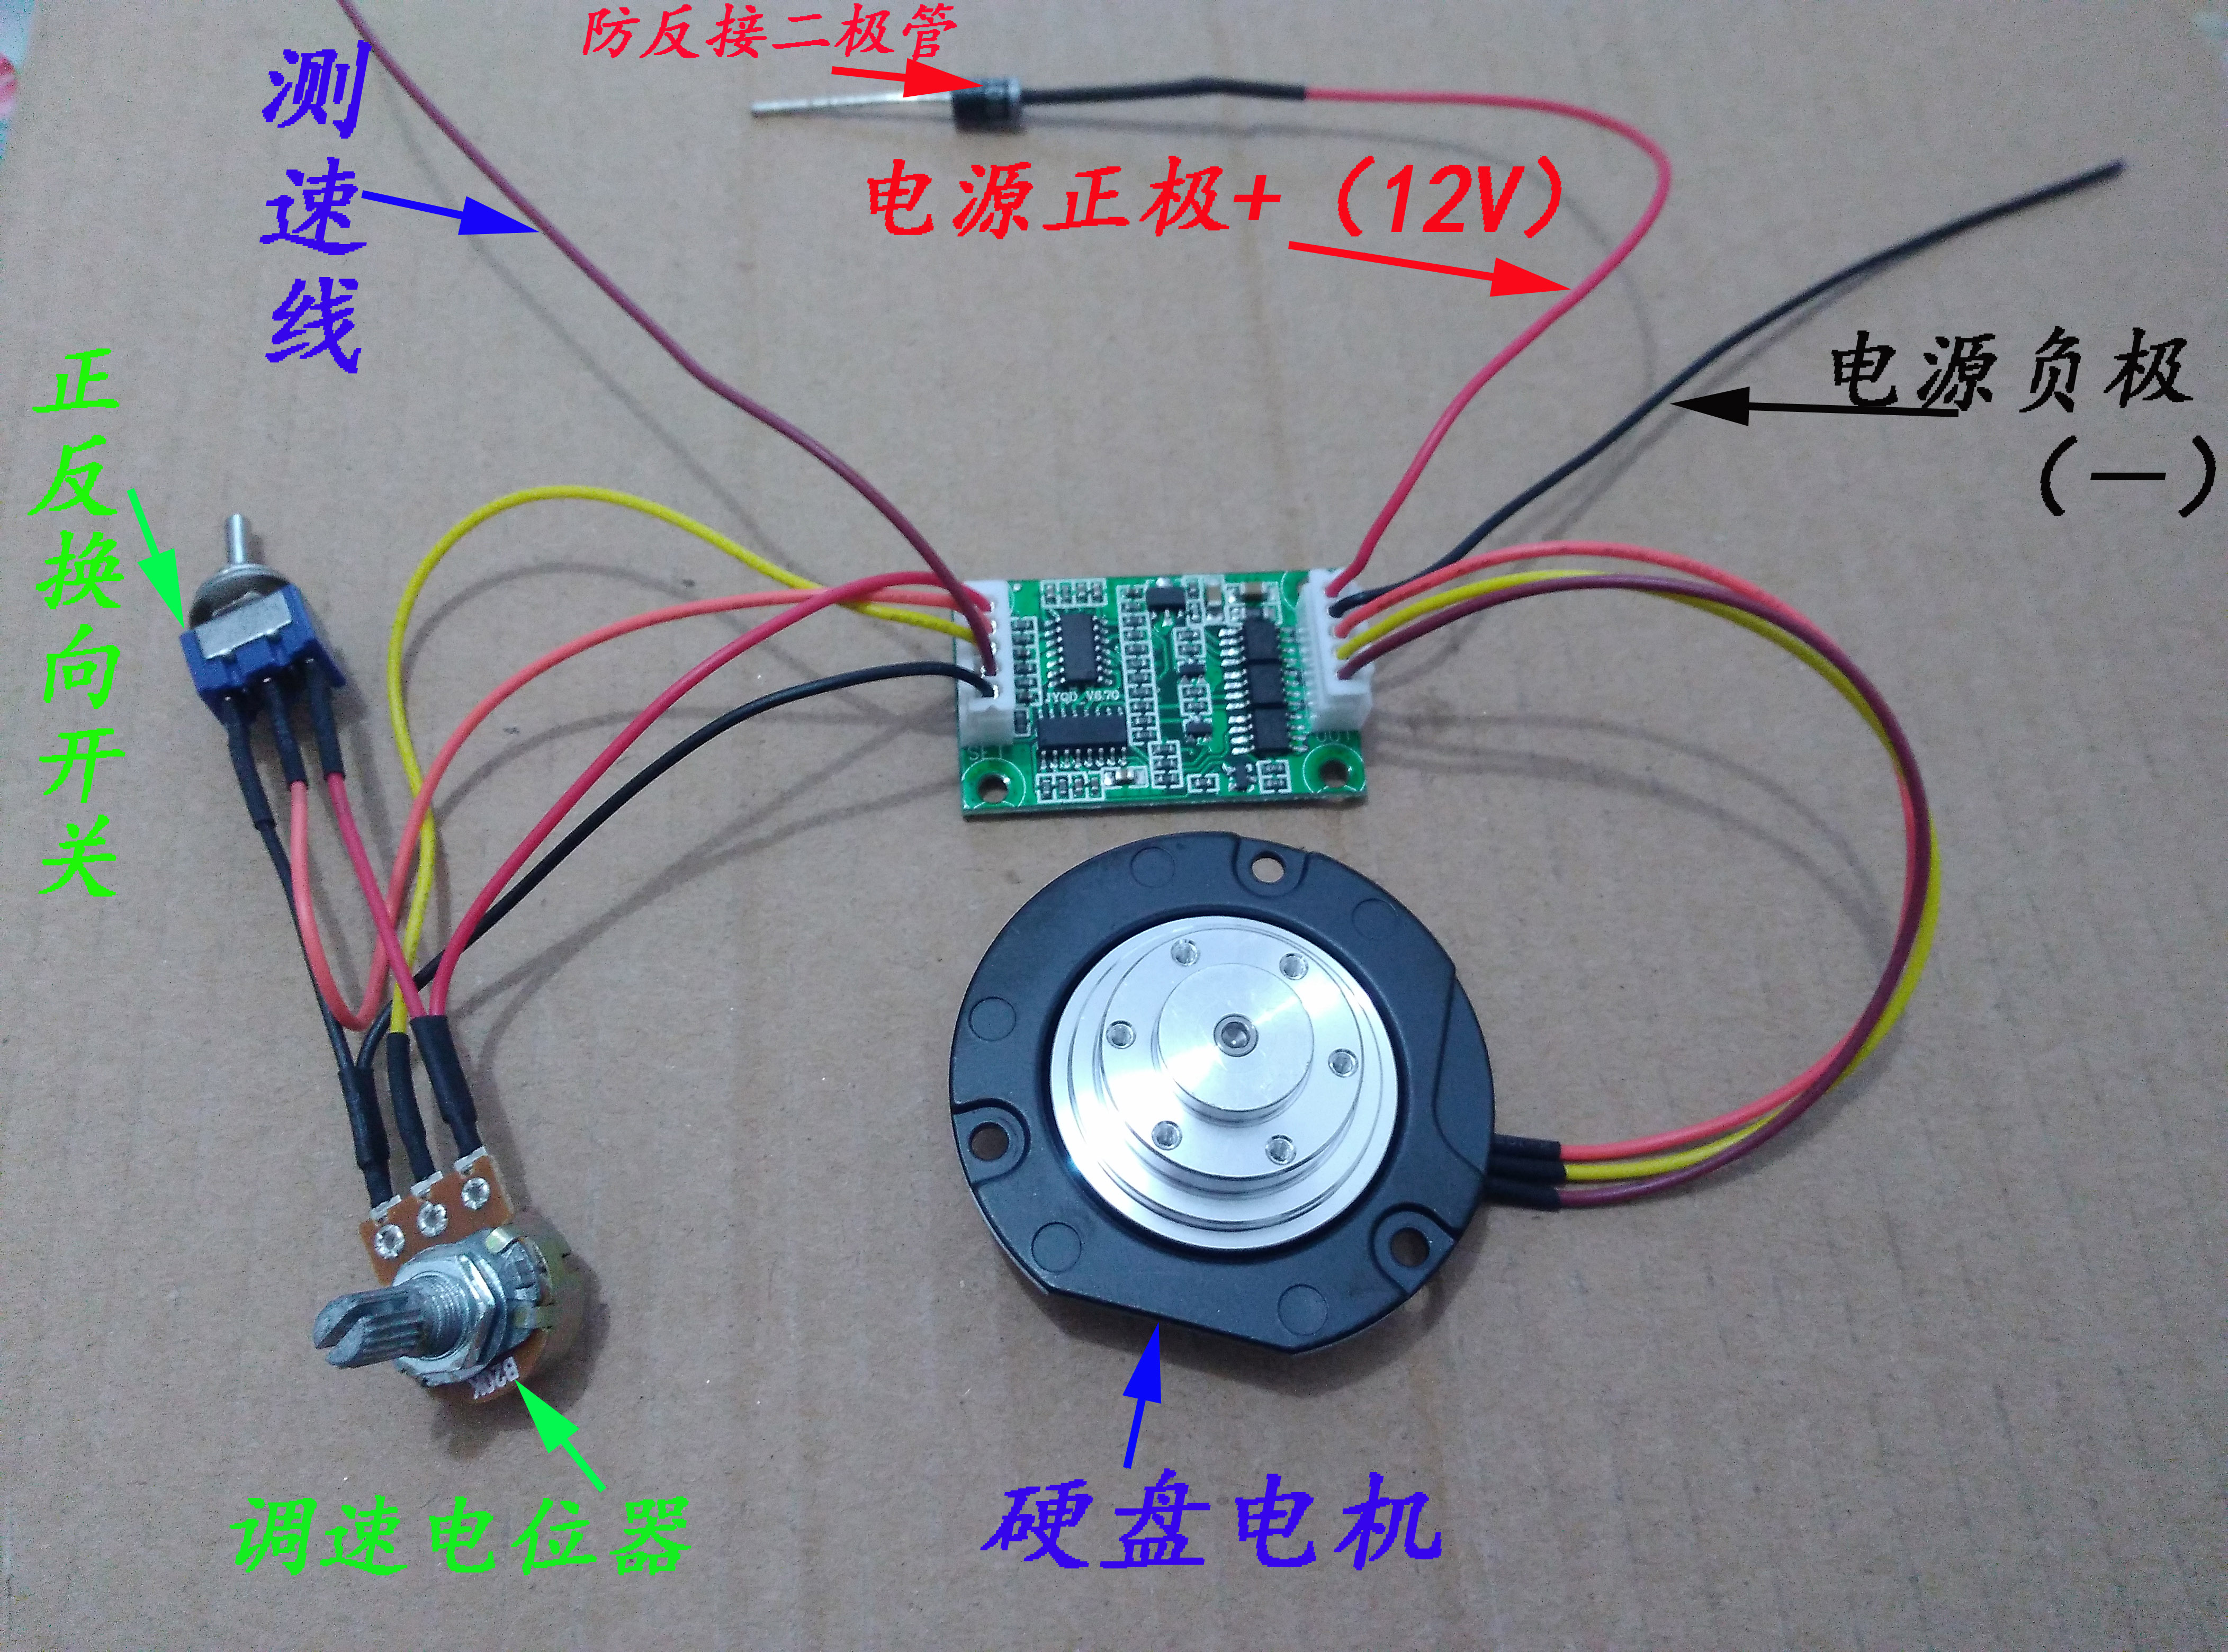 Dc brushless motor drive hard disk motor controller positive and negative speed control pulse output